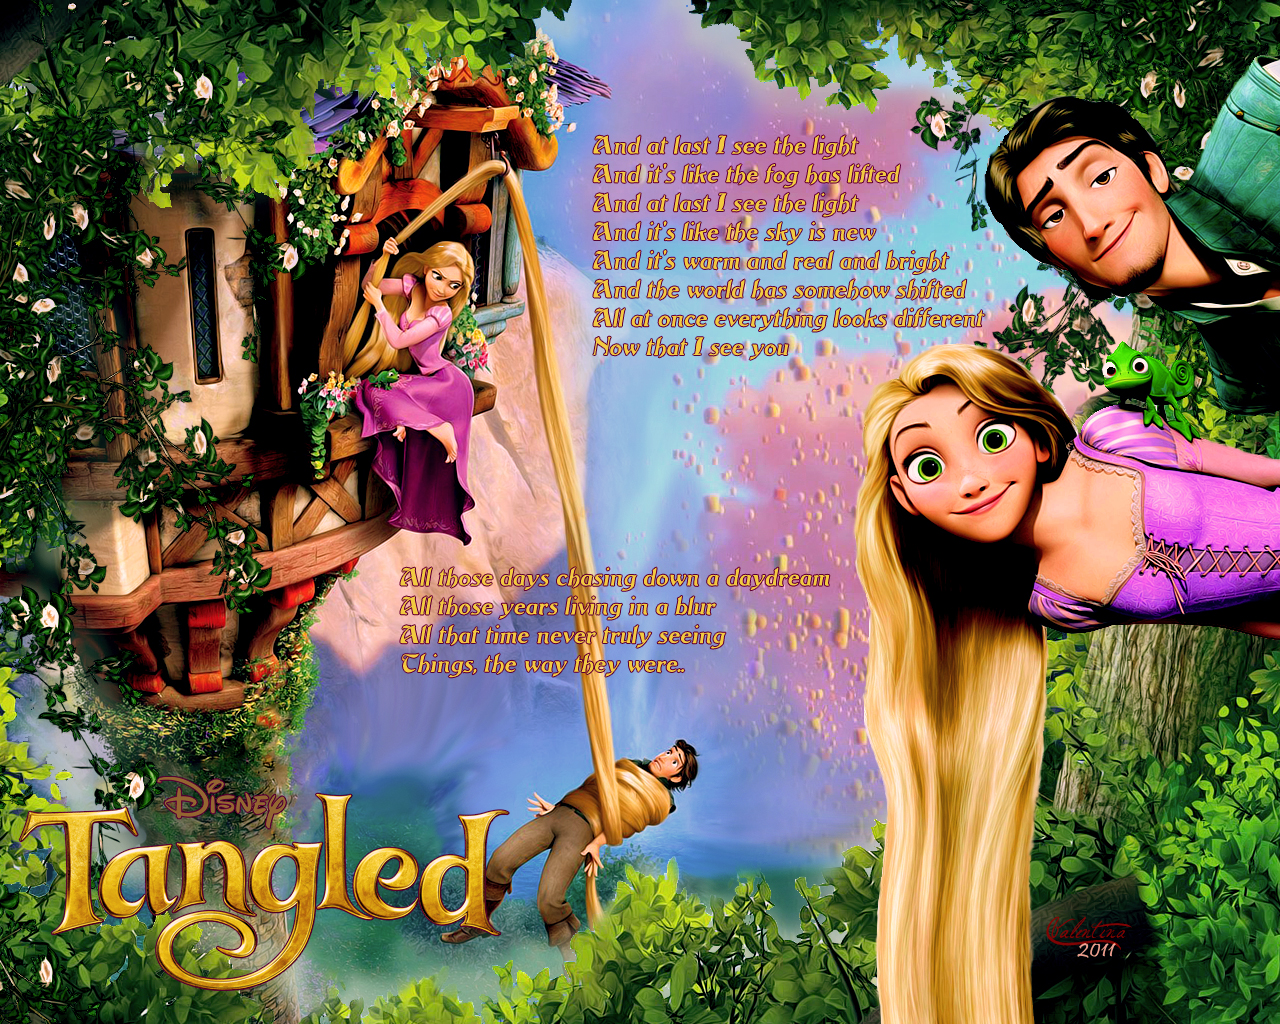 Tangled Wallpaper   Tangled Wallpaper 30575238 1280x1024